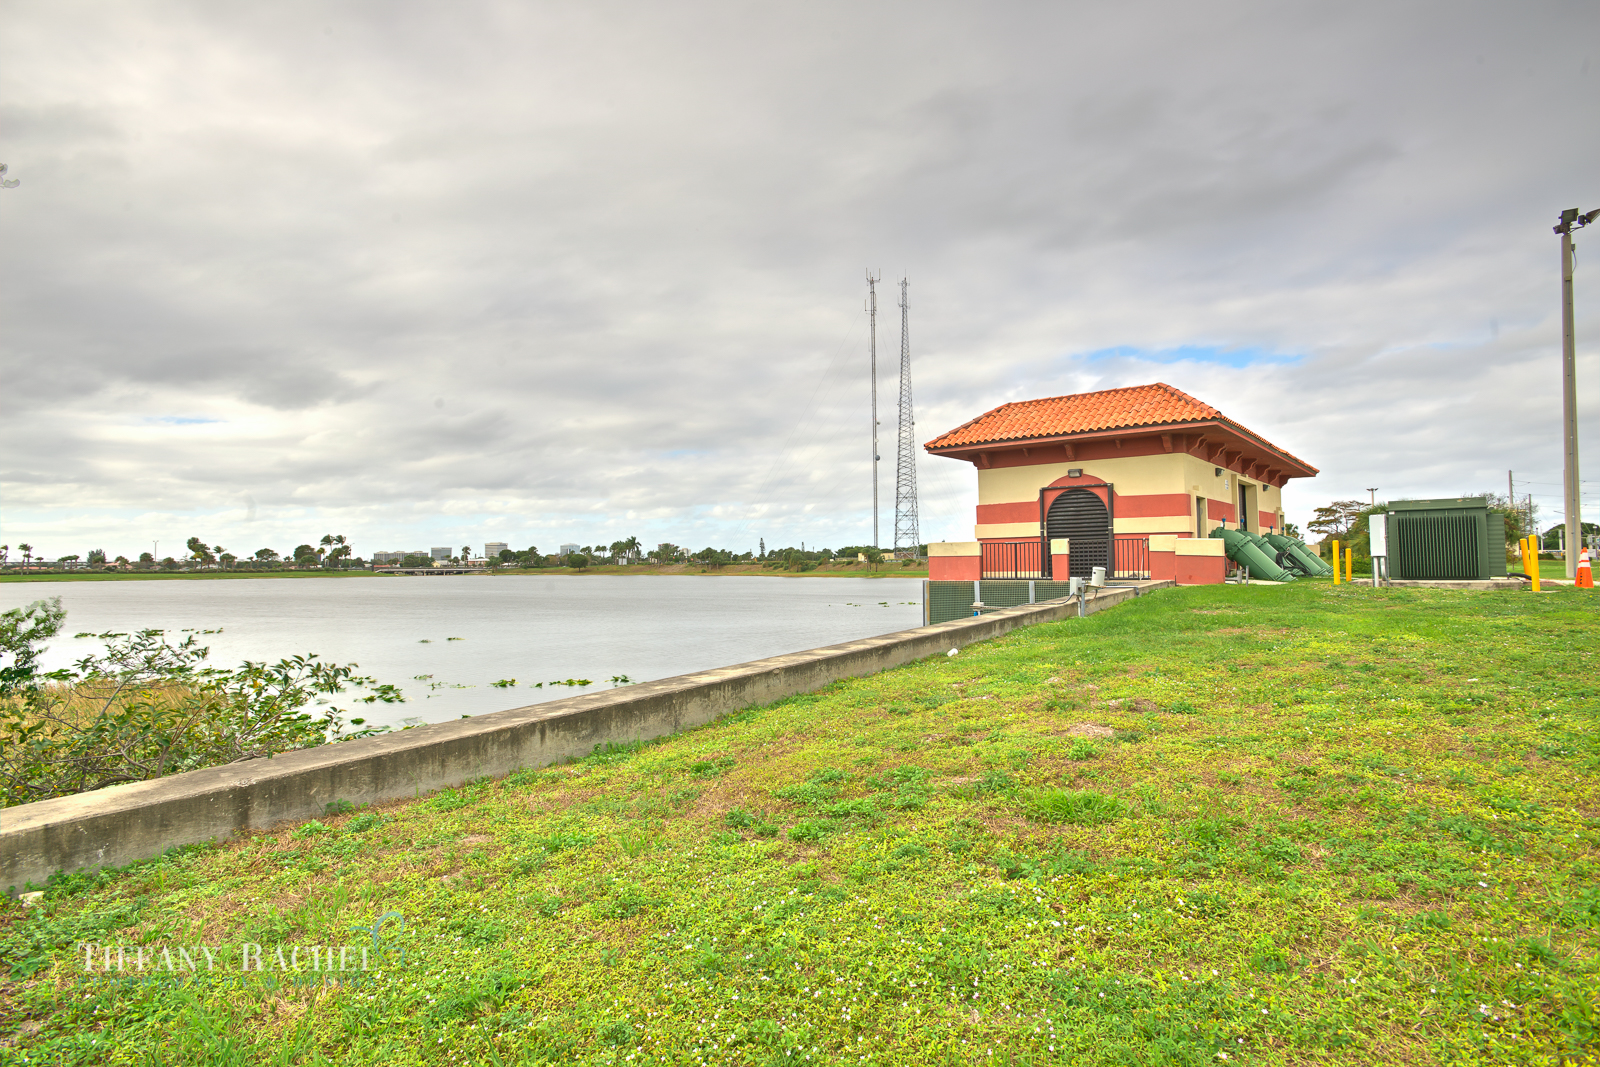 Another angle of the WPB lake and the pumps.